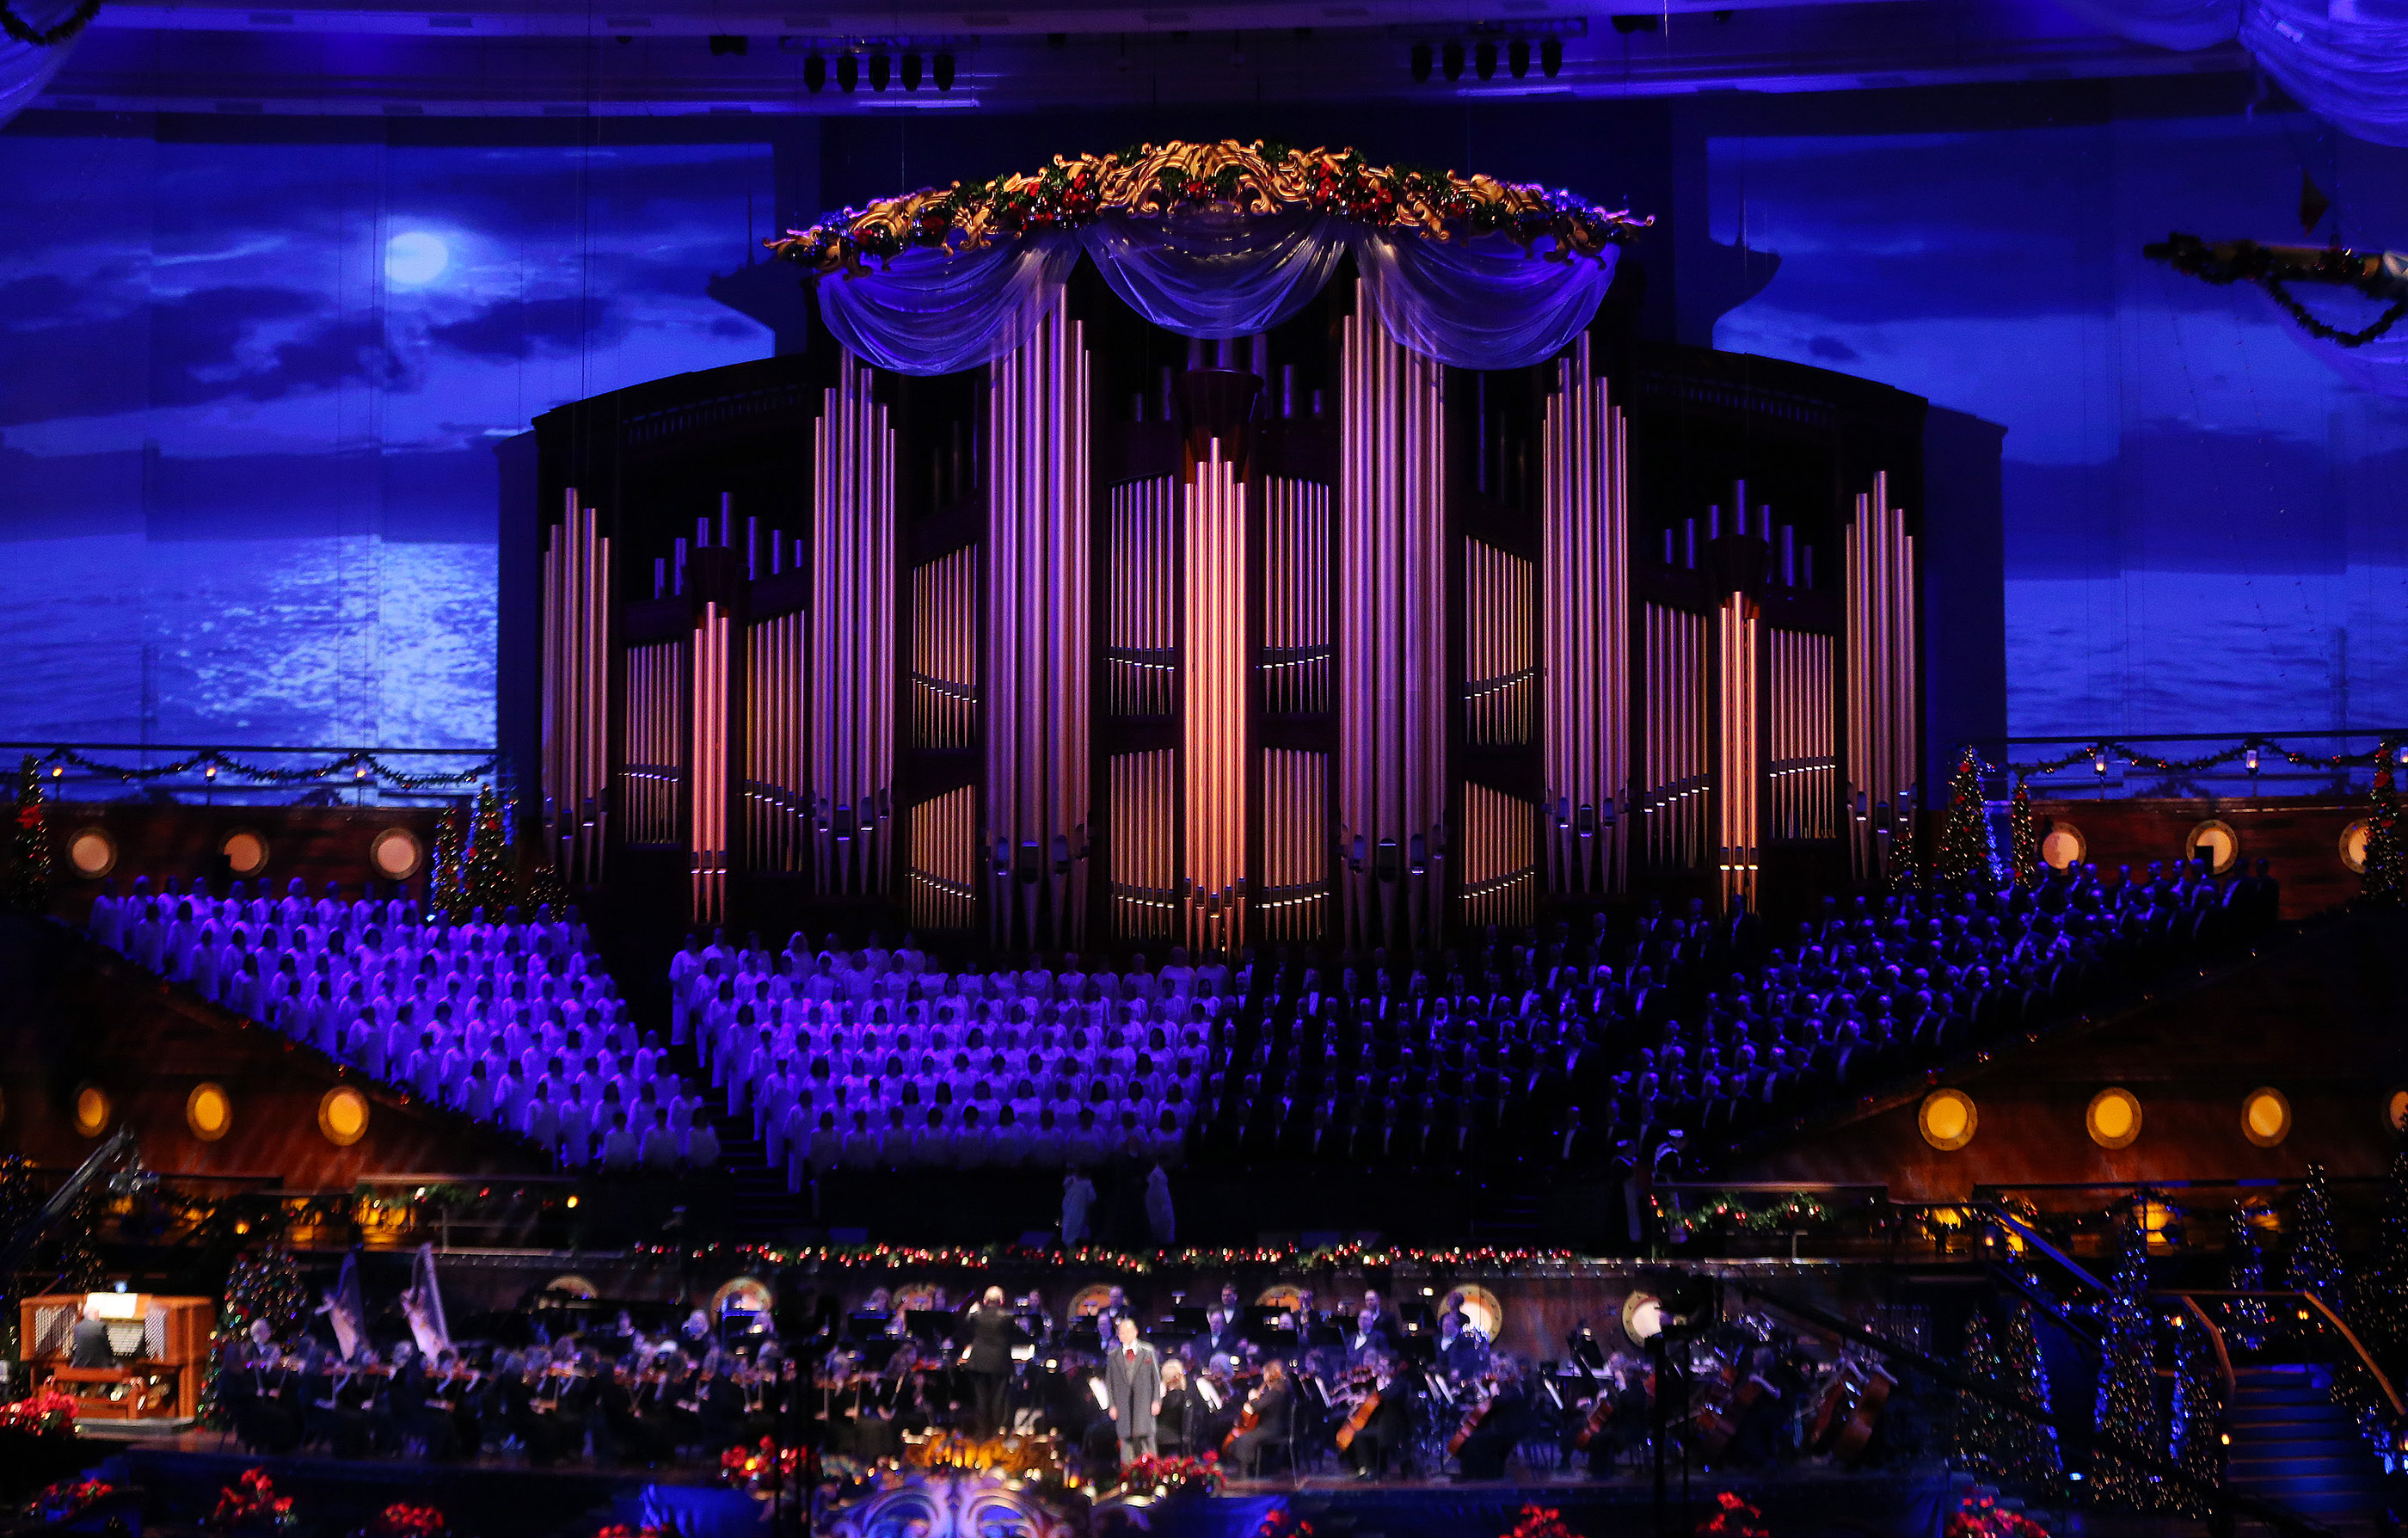 english actor hugh bonneville the mormon tabernacle choir and the orchestra at temple square perform during the christmas concert in salt lake city on